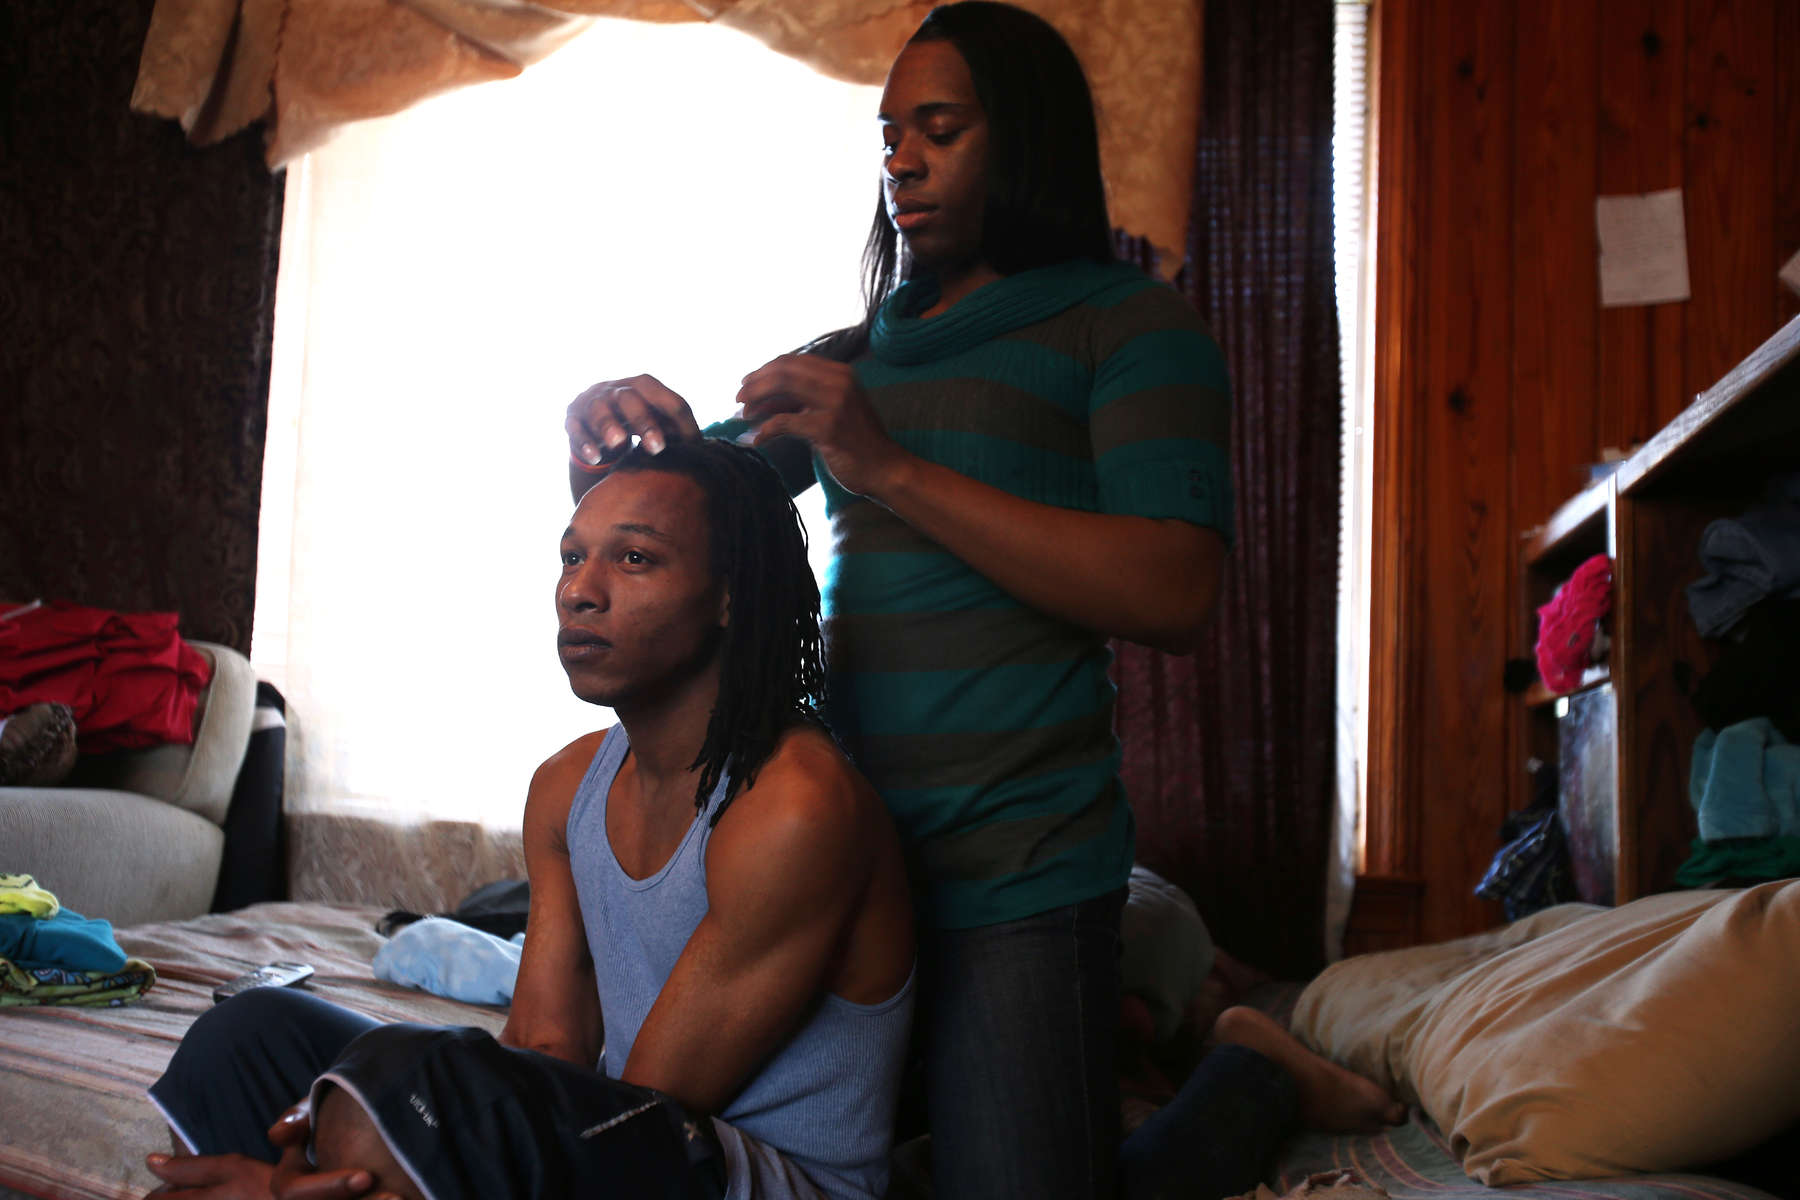 Timothy Smith and his boyfriend German Davis get ready for work at a Loxley Hardees in their Mobile home on Jan. 3, 2014. Timothy works as a cashier and German is a cook.